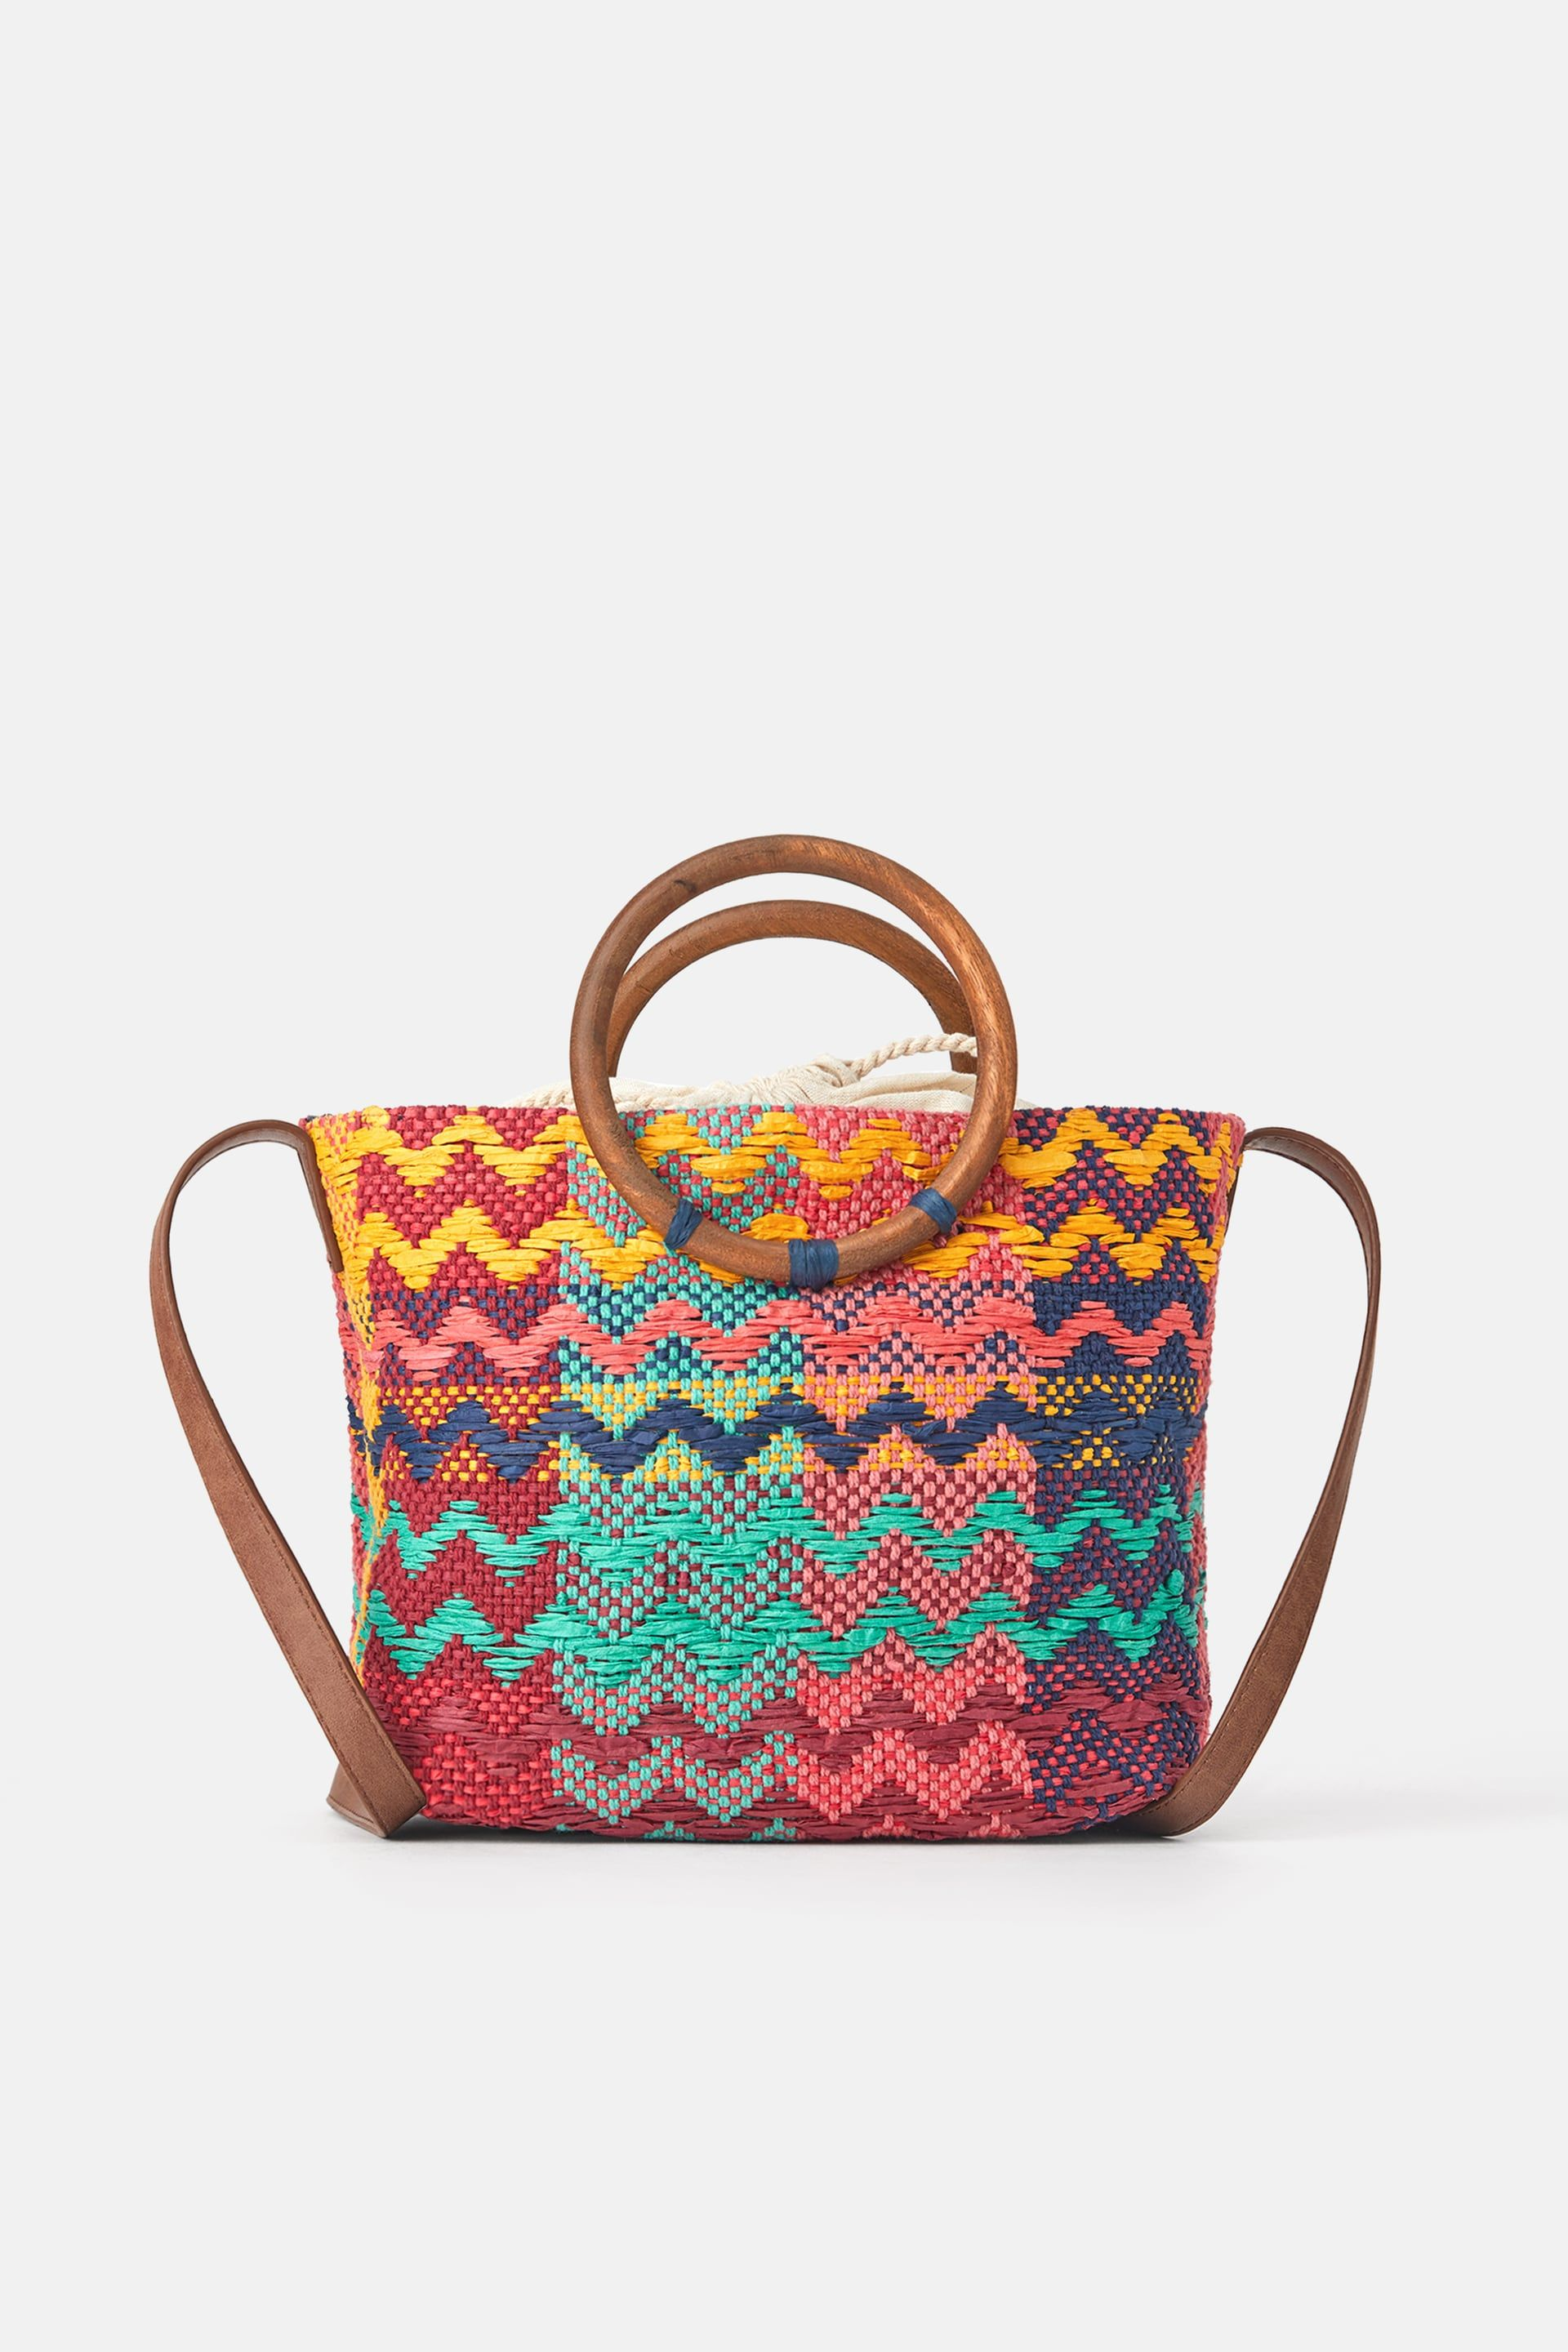 Multicoloured Tote Bag With Wooden Handles In 2020 Bags